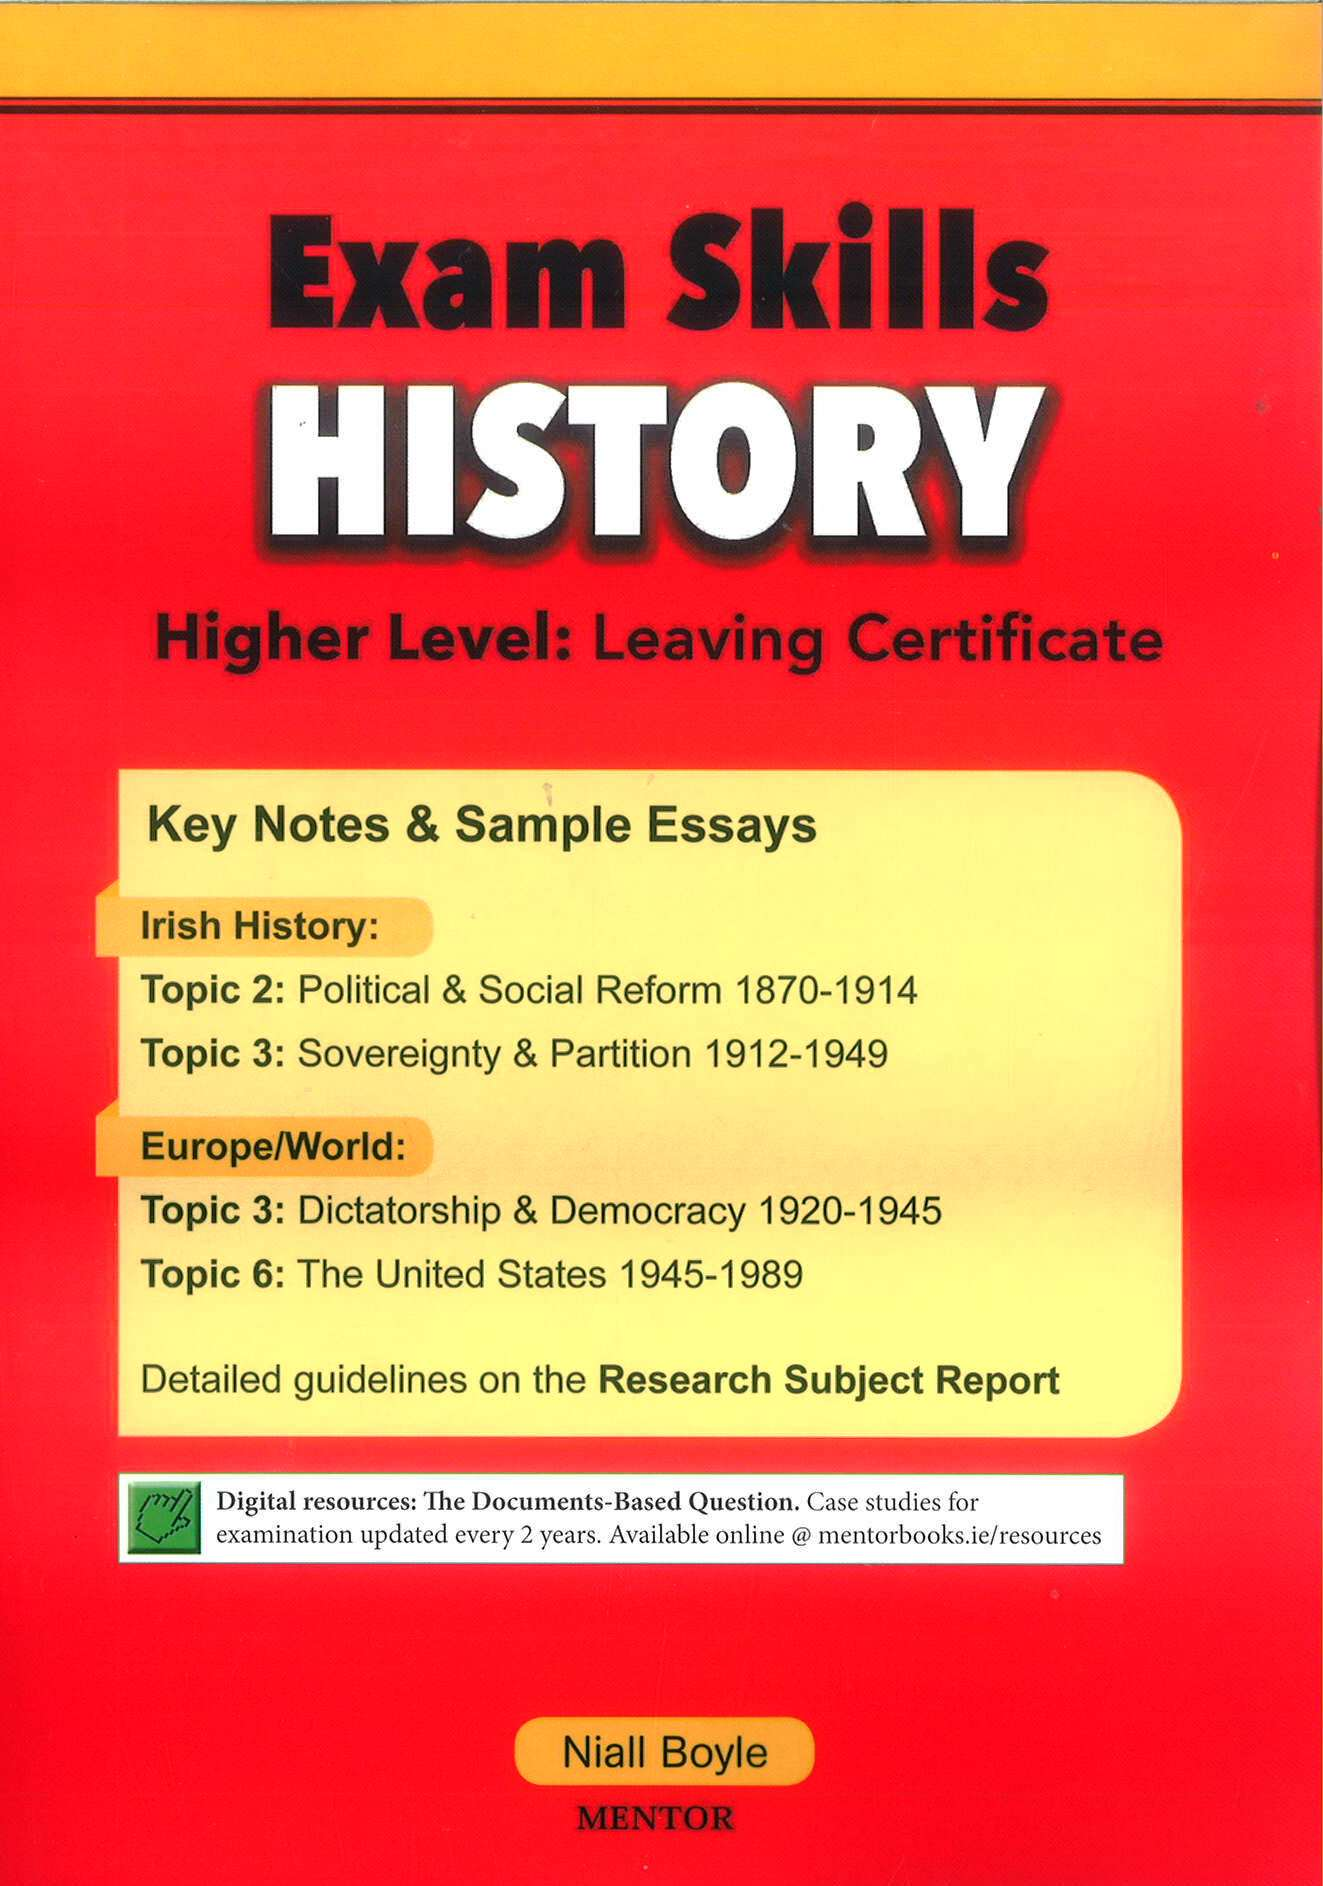 leaving certificate history essays Rte leaving cert history 2005 leaving cert history revision guide higher level: revision topics: leaving certificate 1999, 1997, 1996, 1995 and 1987.